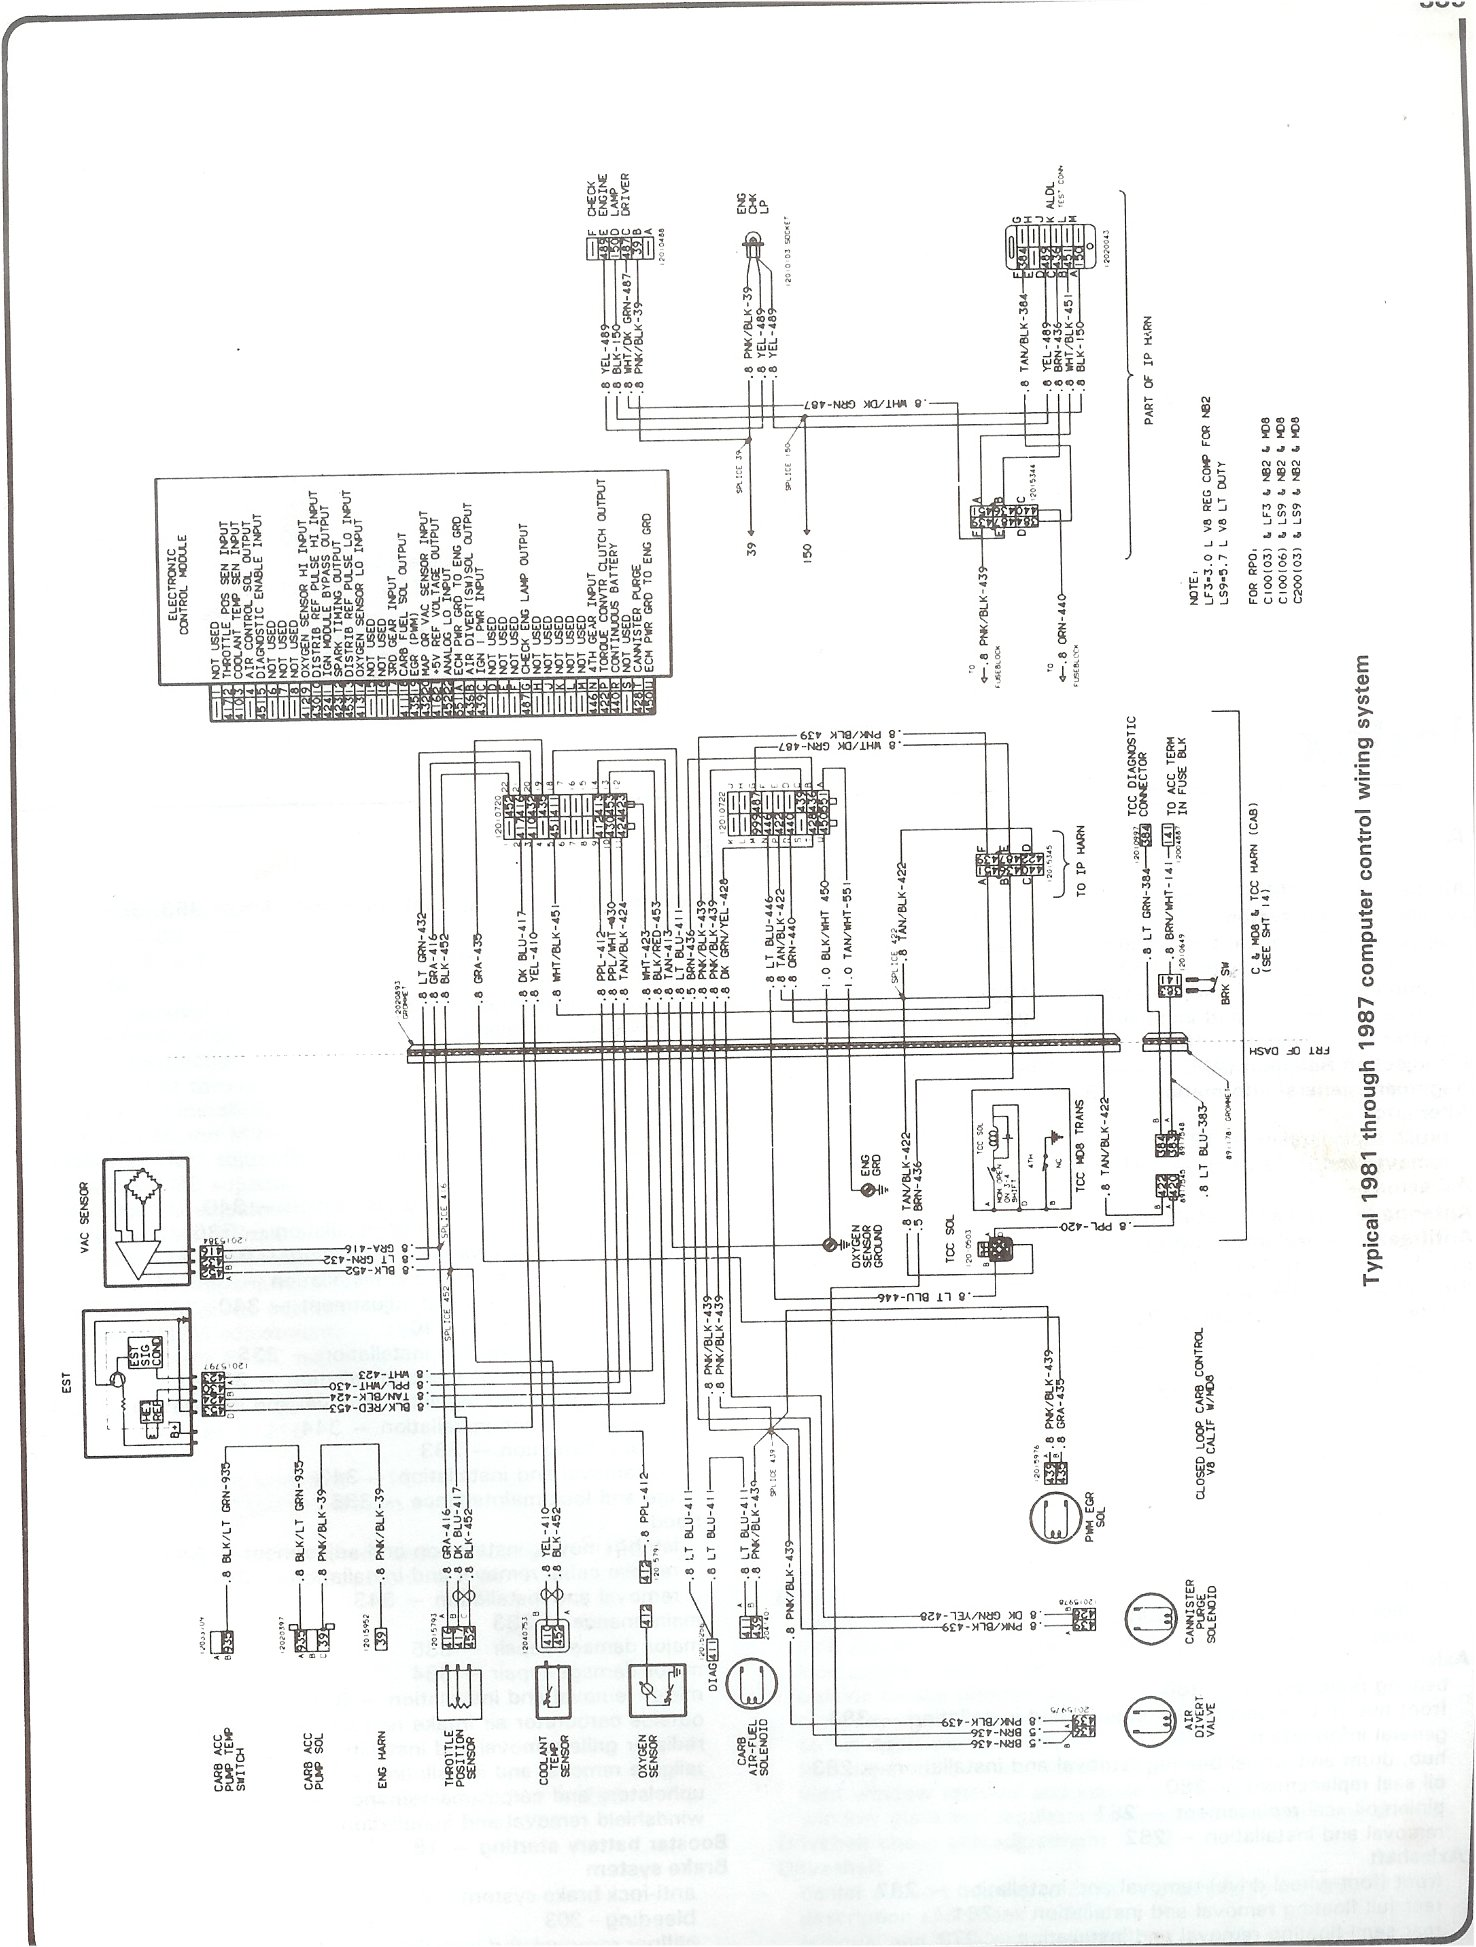 81 87_computer_control_wiring complete 73 87 wiring diagrams 87 chevy r10 wiring diagram at gsmx.co